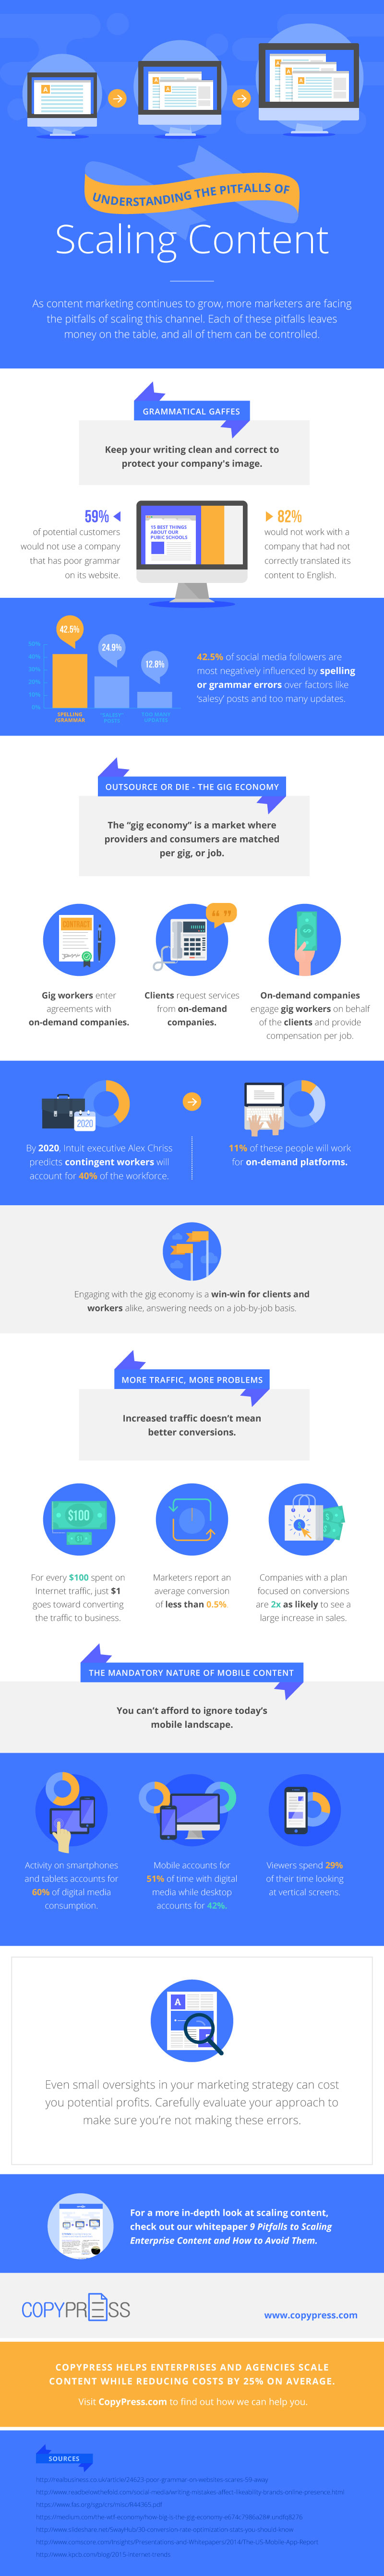 pitfalls-of-scaling-content-infographic.jpg